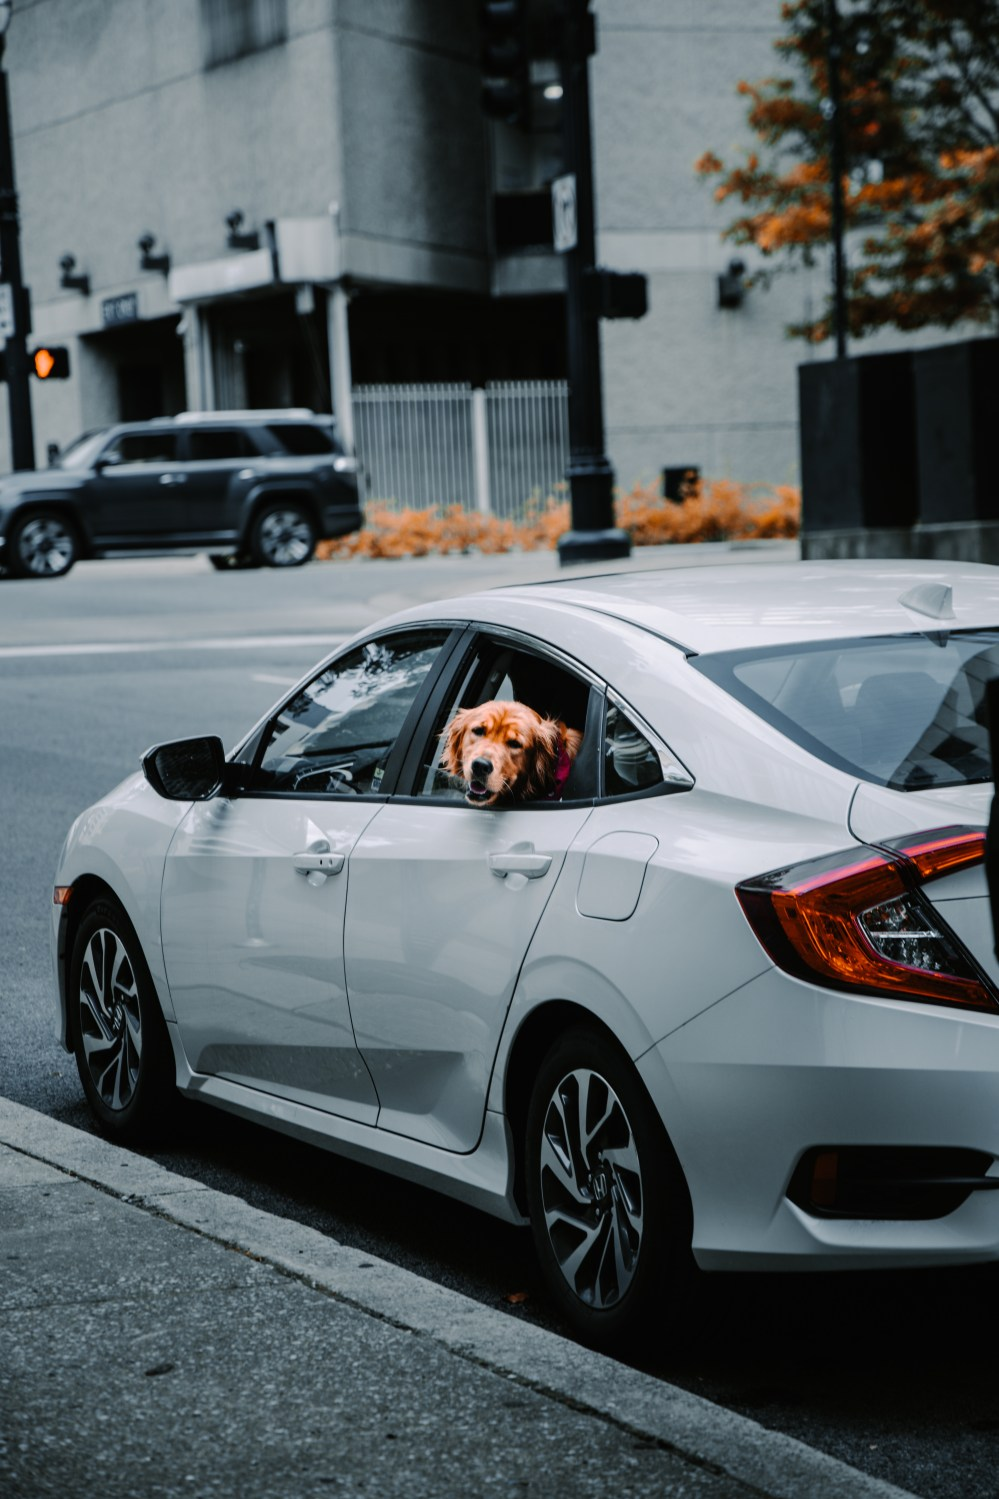 Honda civic si sedan factory performance concept 2008 wallpapers. 500 Honda Civic Pictures Hd Download Free Images On Unsplash